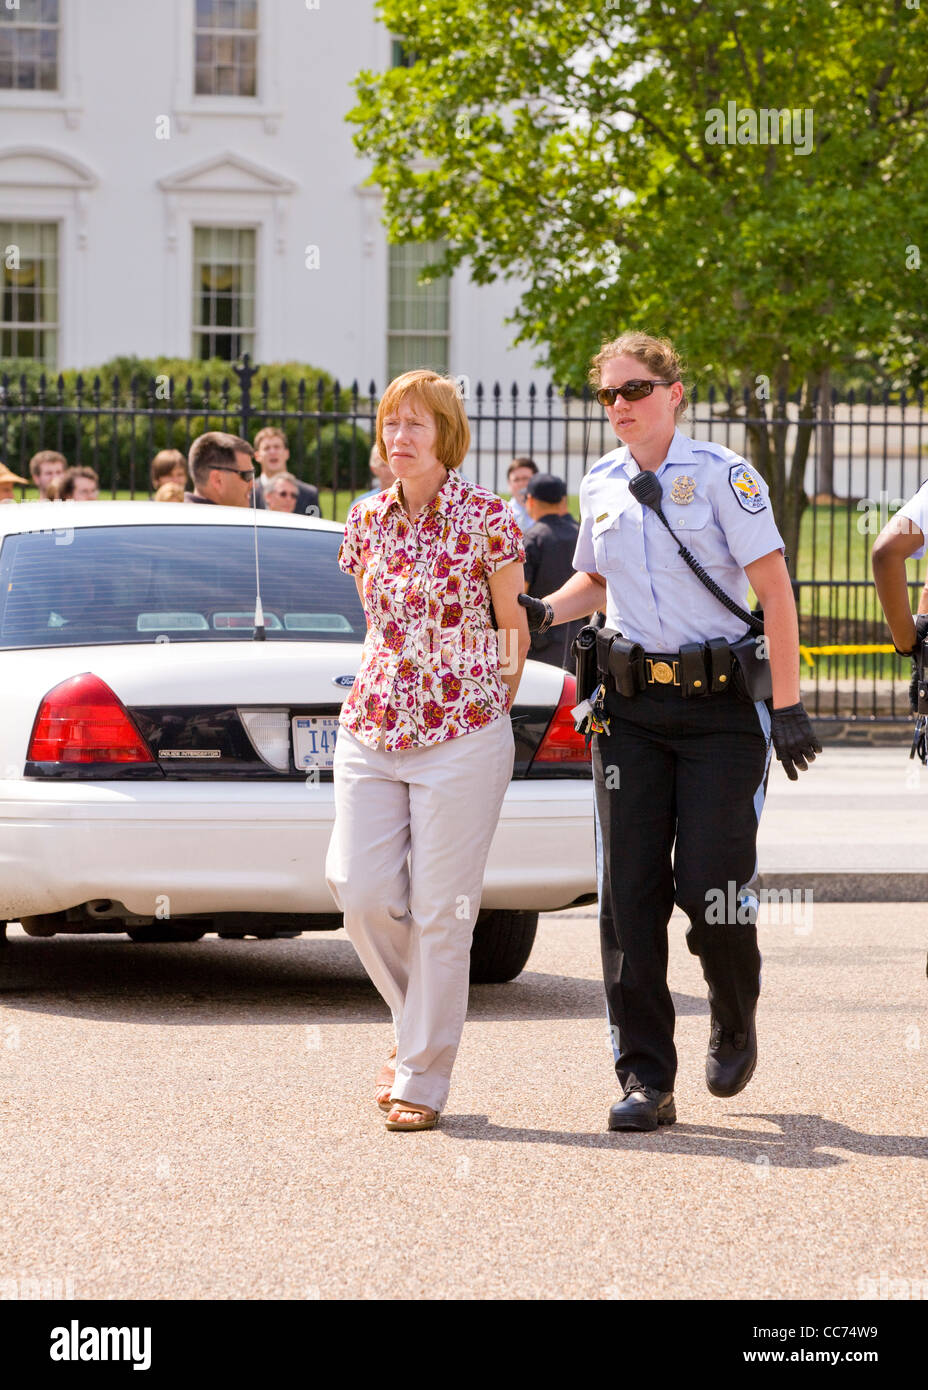 A female demonstrator is handcuffed and taken away by police - Washington, DC USA - Stock Image